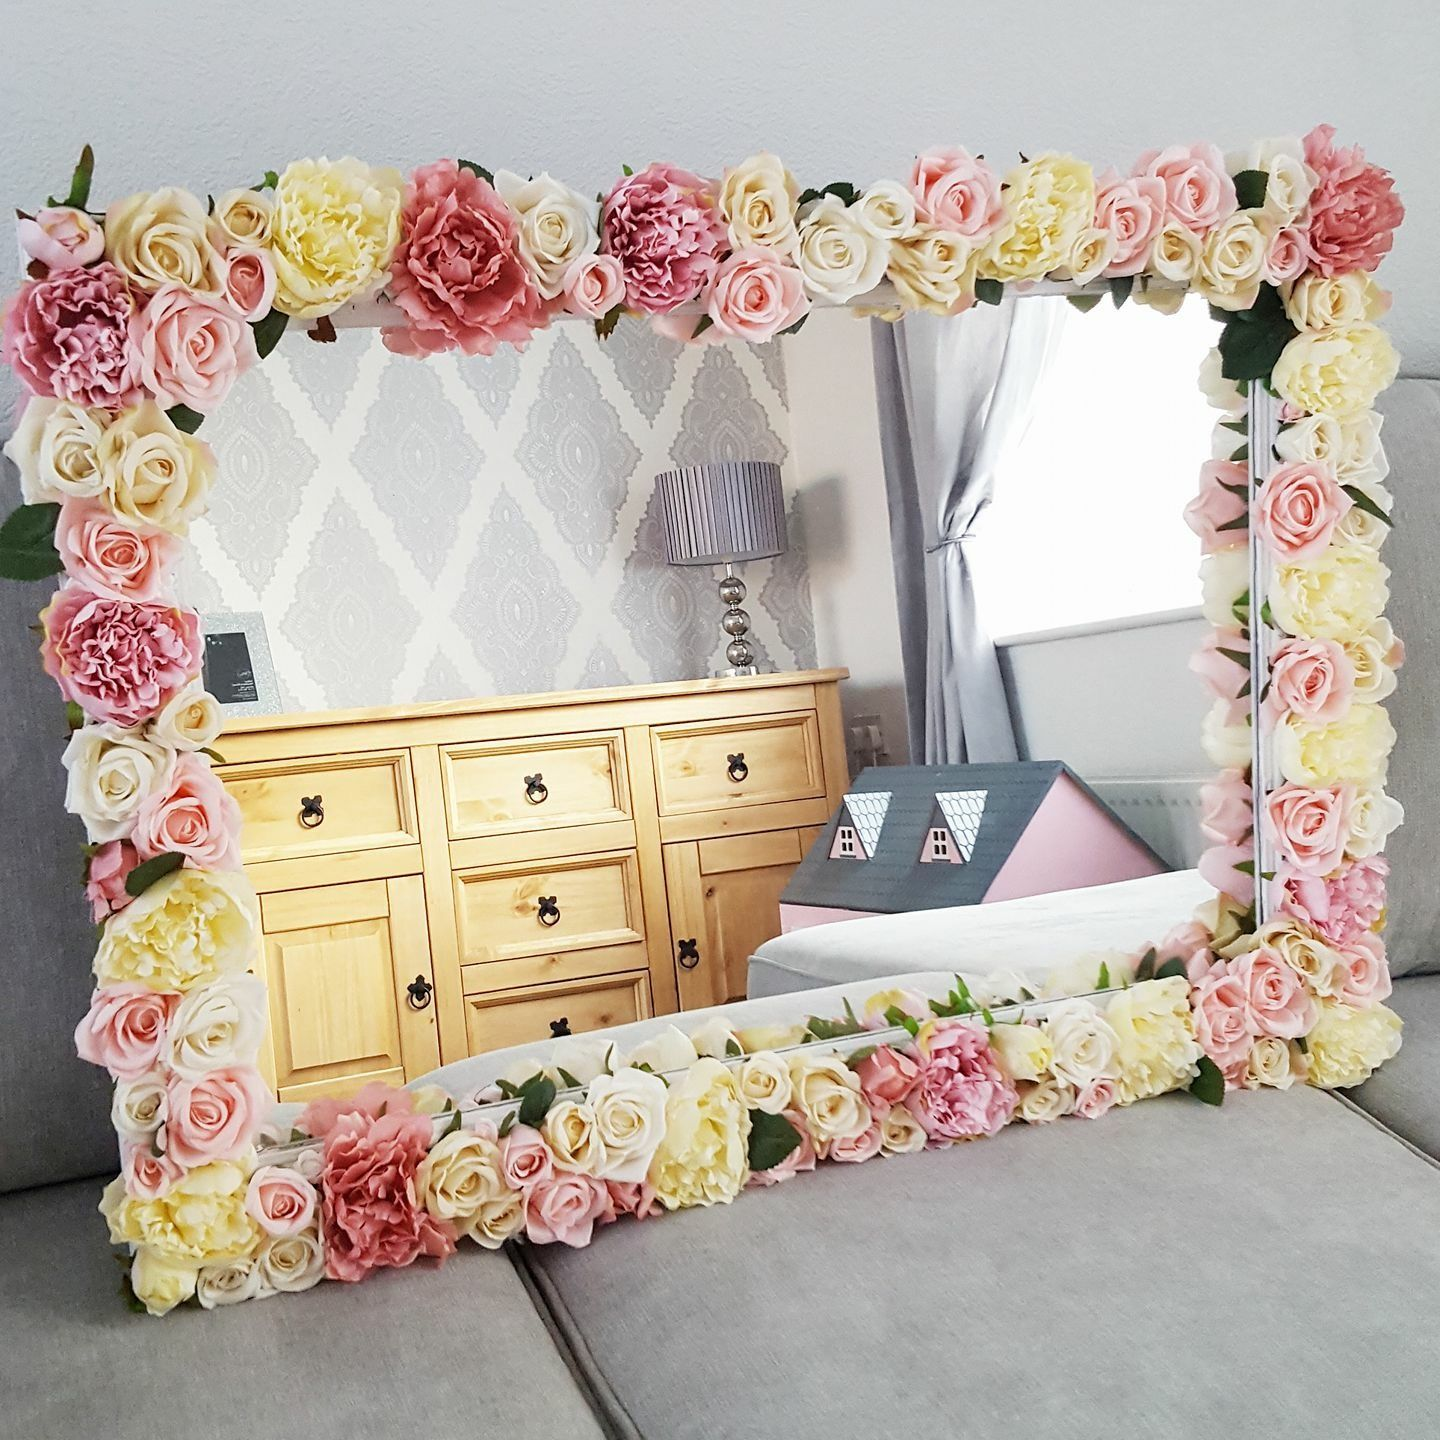 21 Diy Vanity Mirror Ideas Remodel Or Move